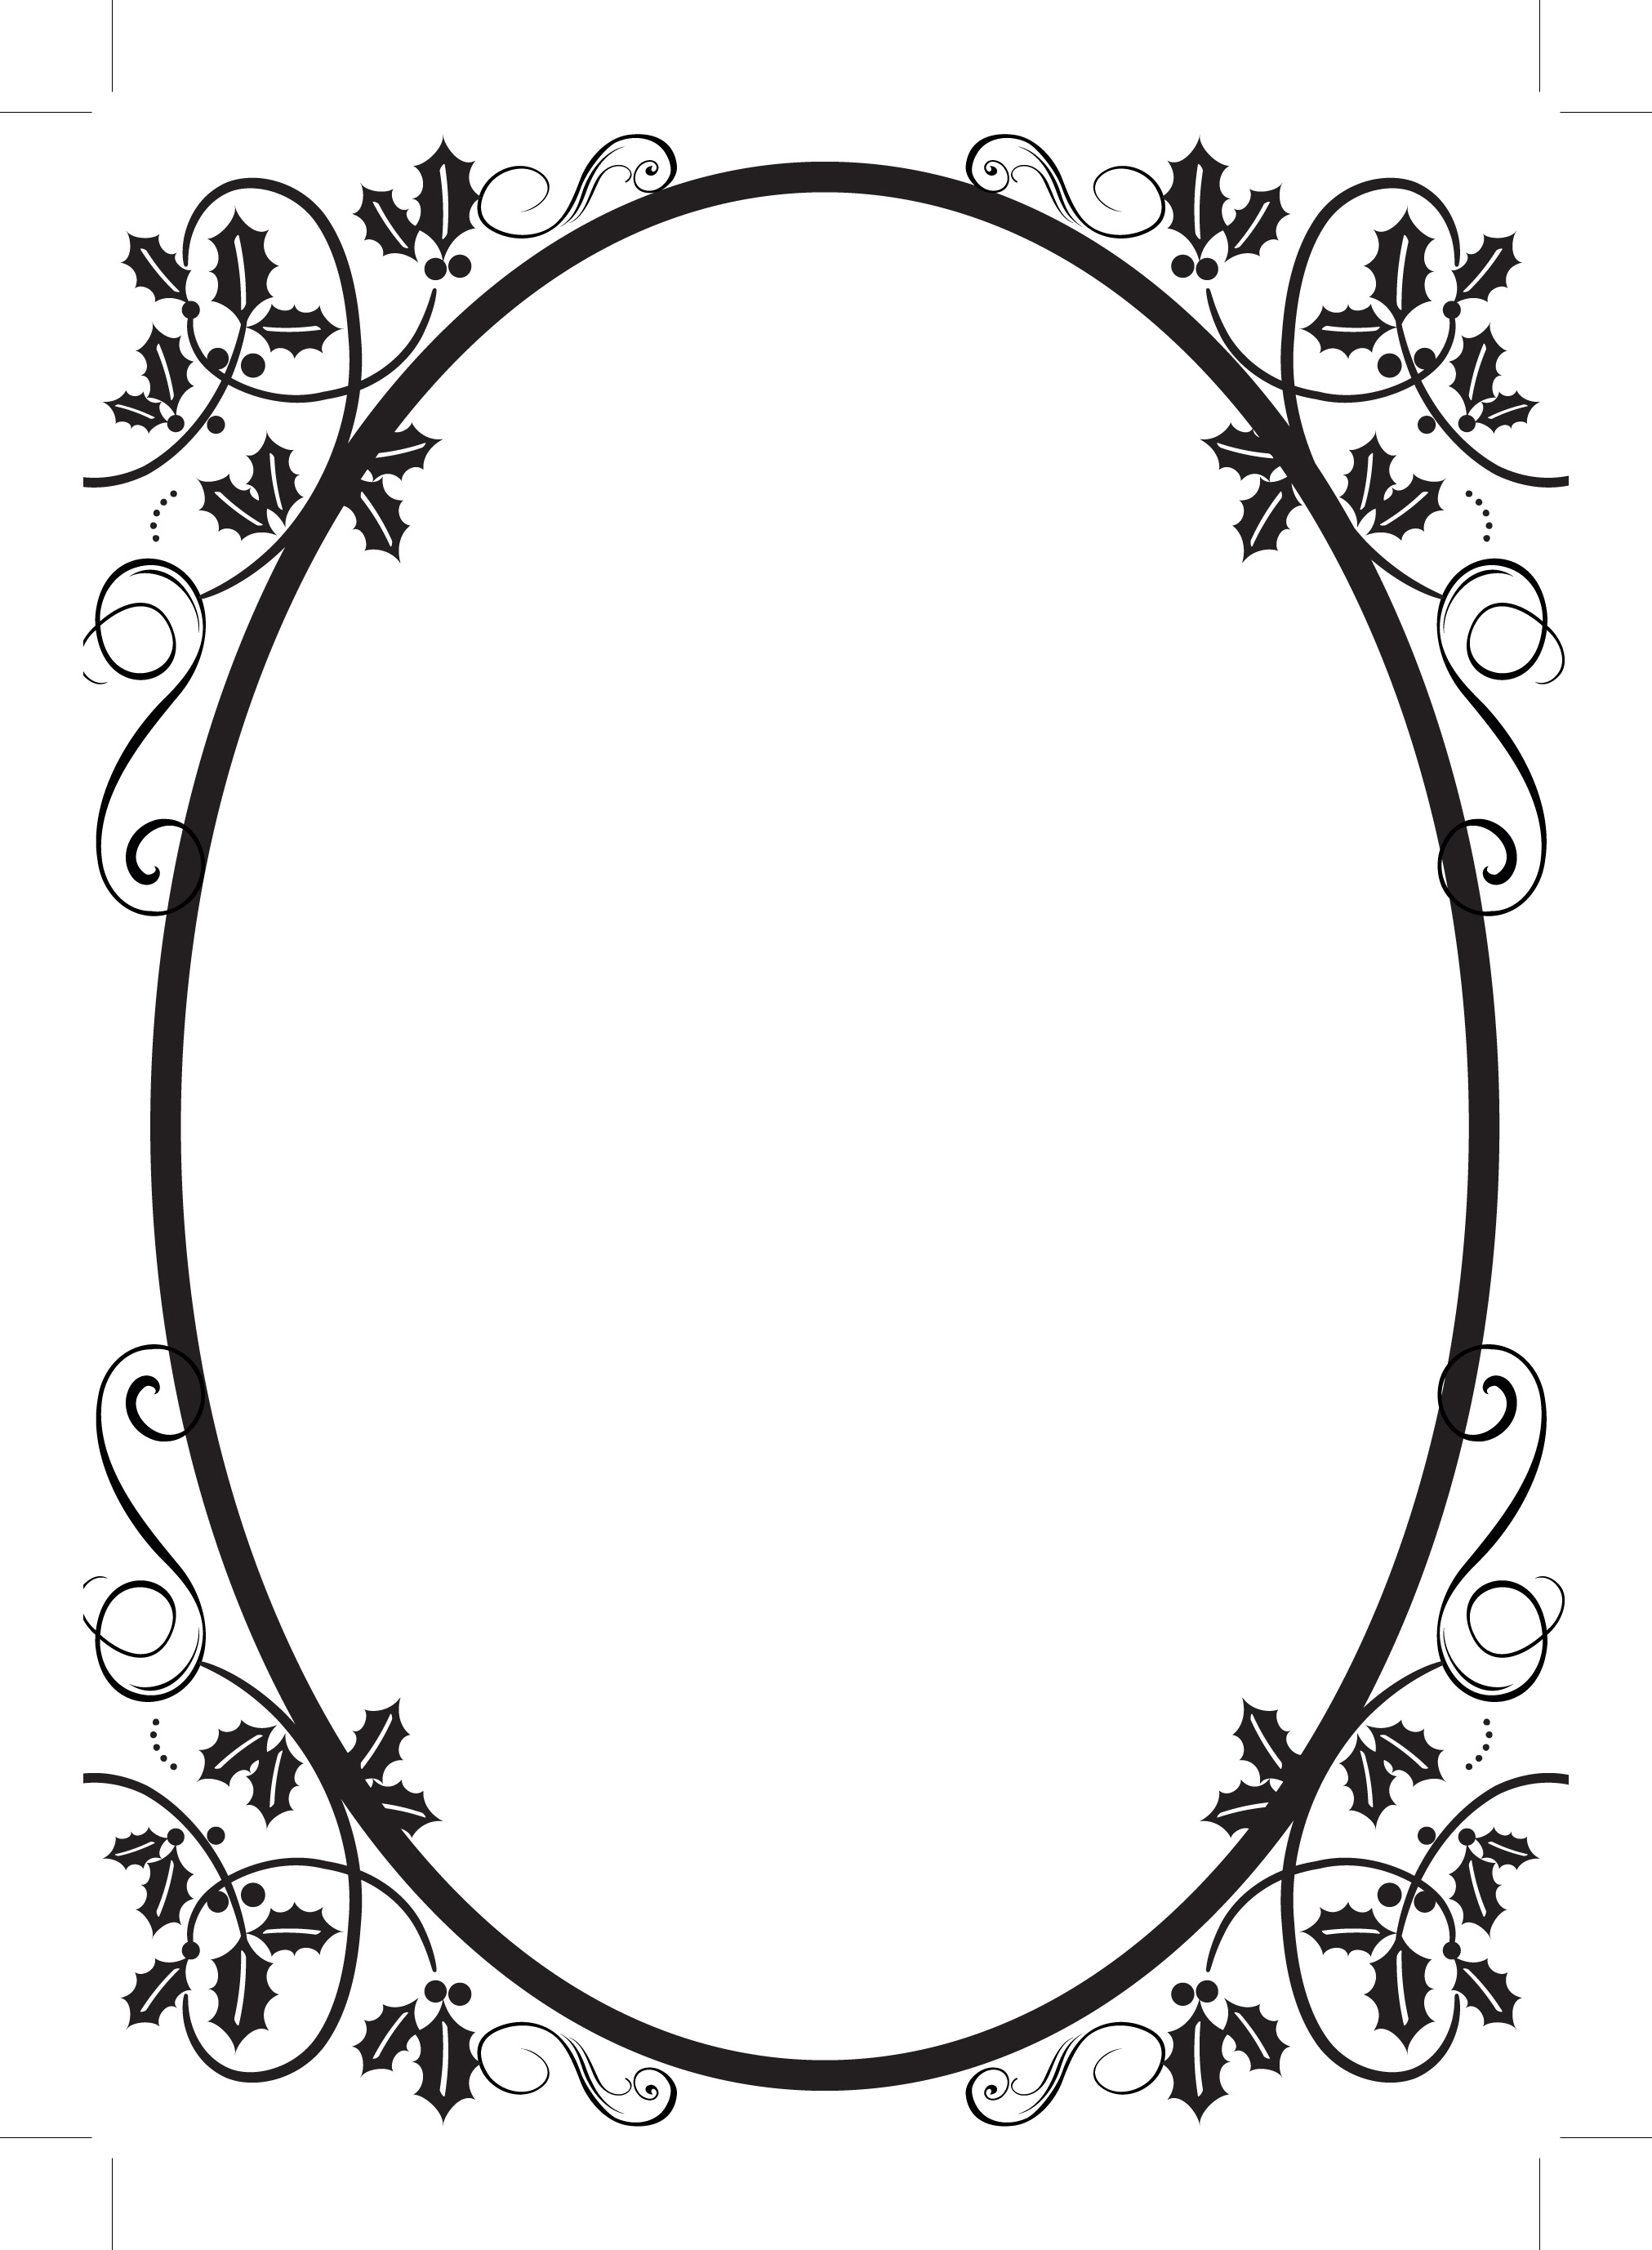 Free flourish clip art borders random search